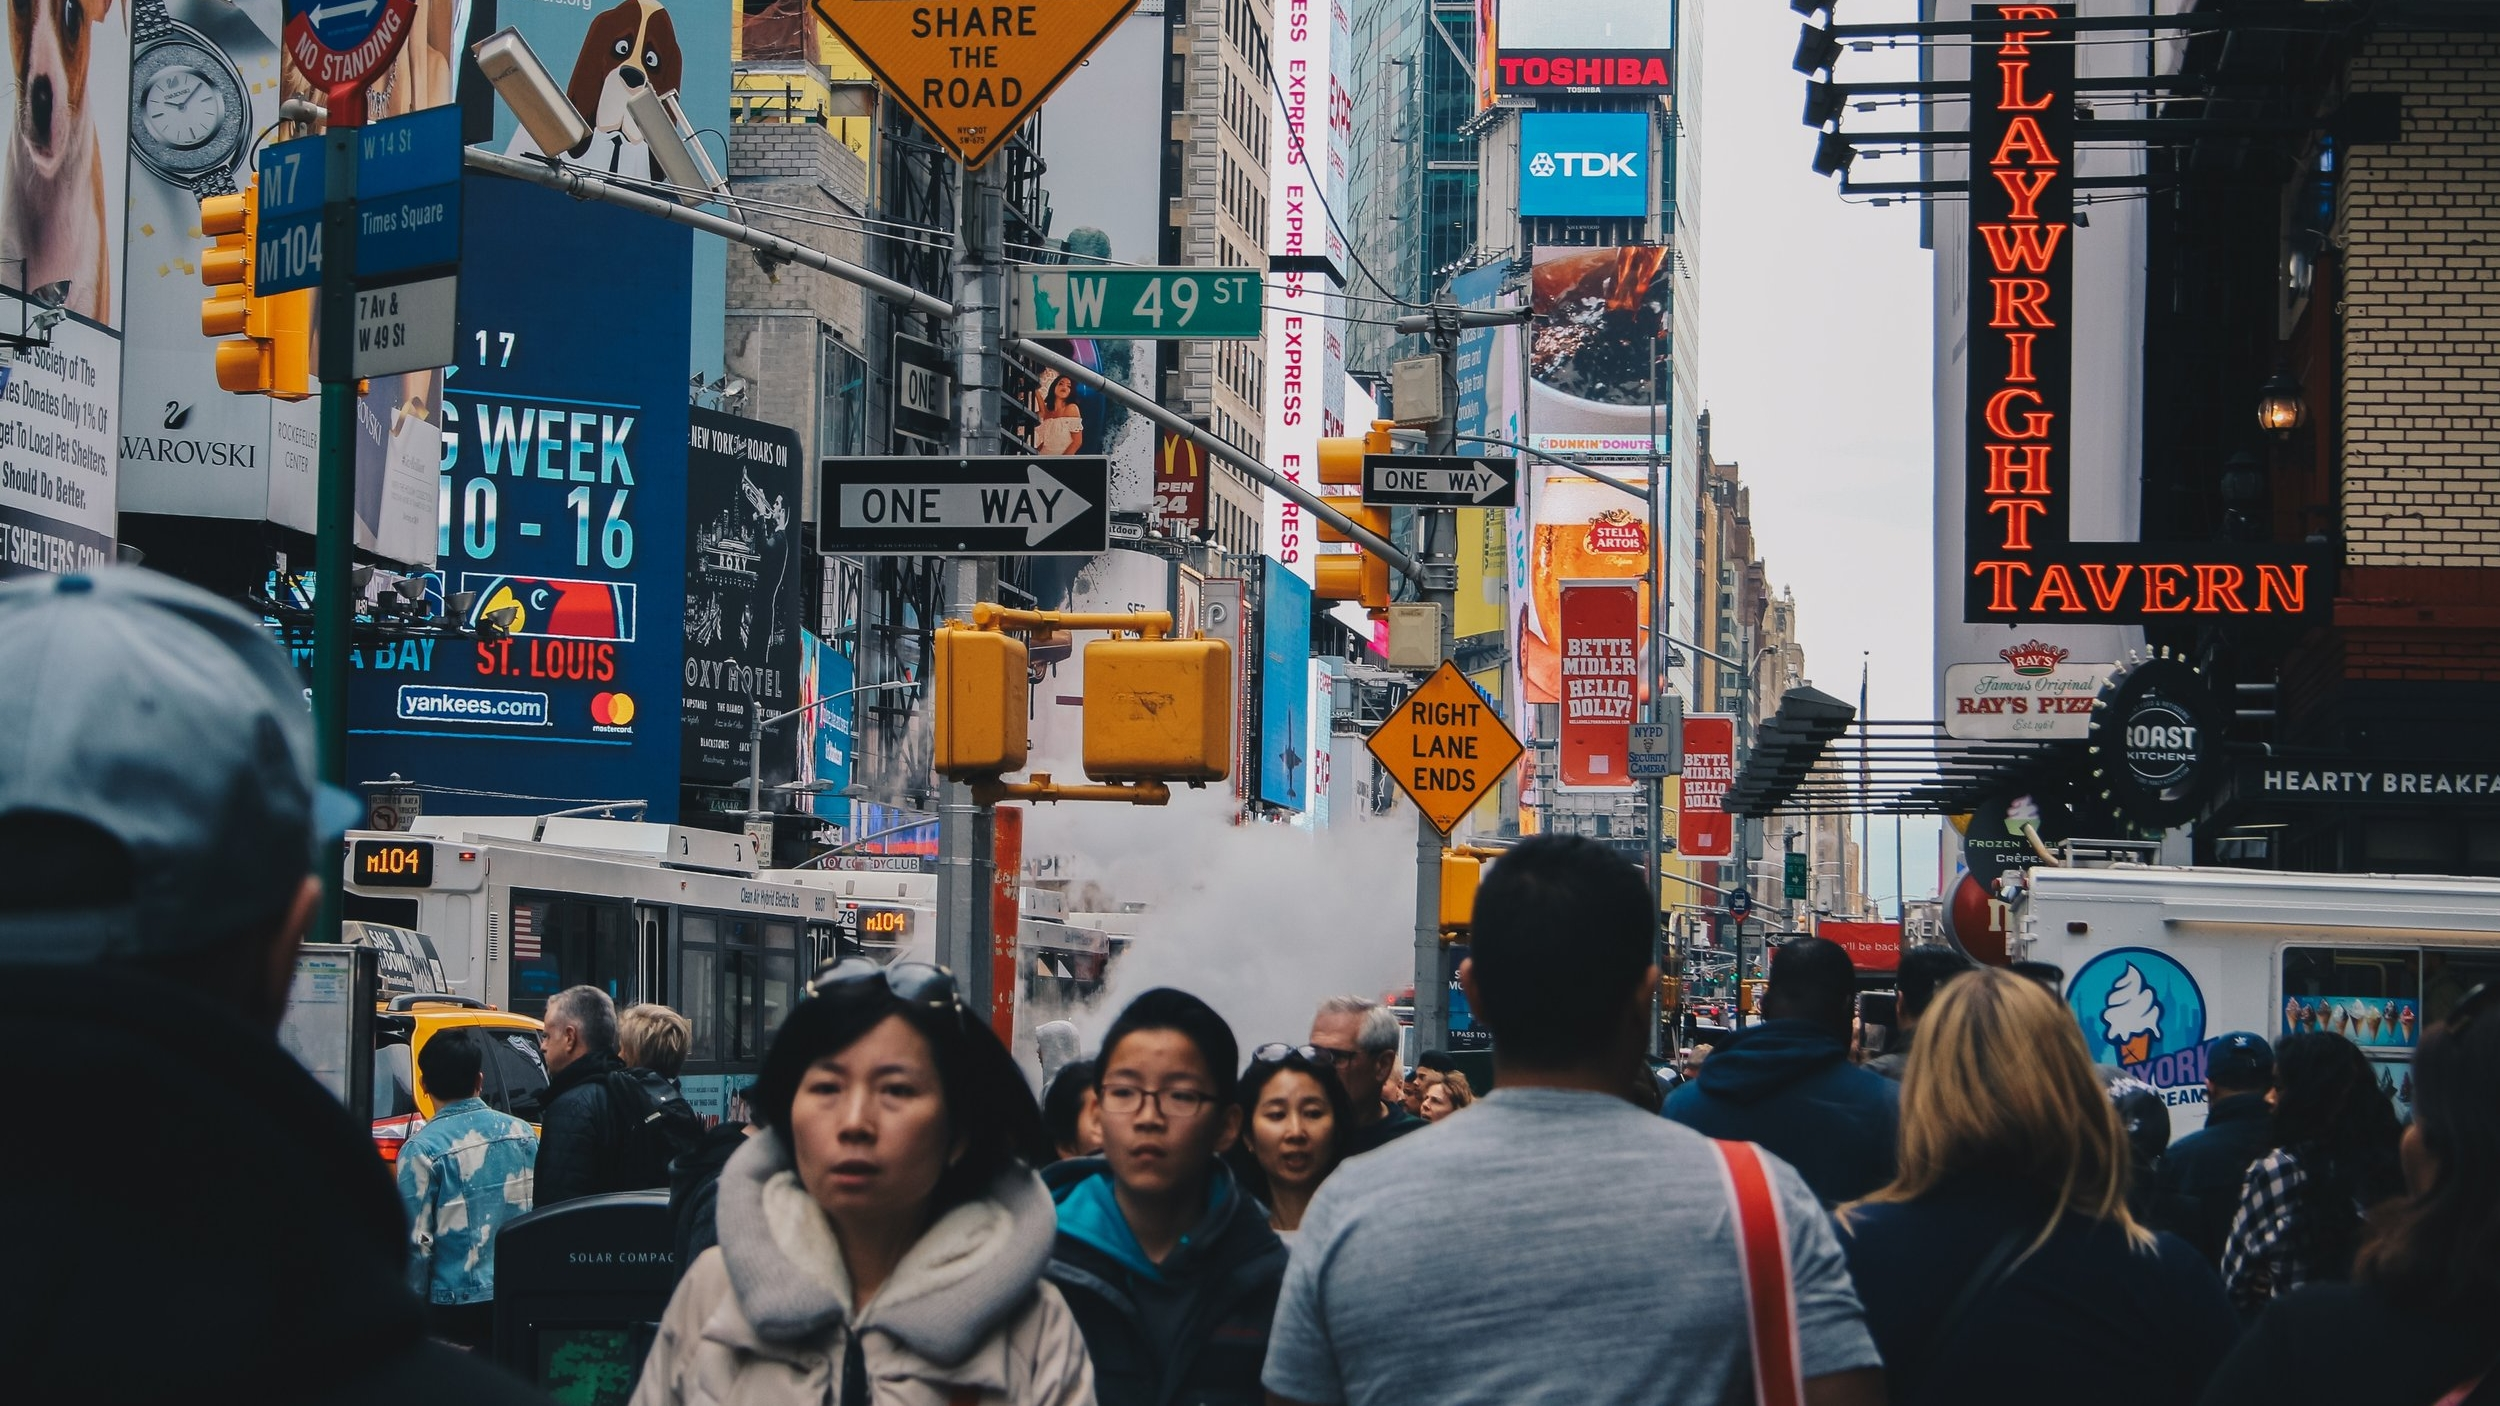 We thought we knew what it would be like to buy something from a NYC counterfeiter. We were wrong. // Image: Asel Peña / Unsplash